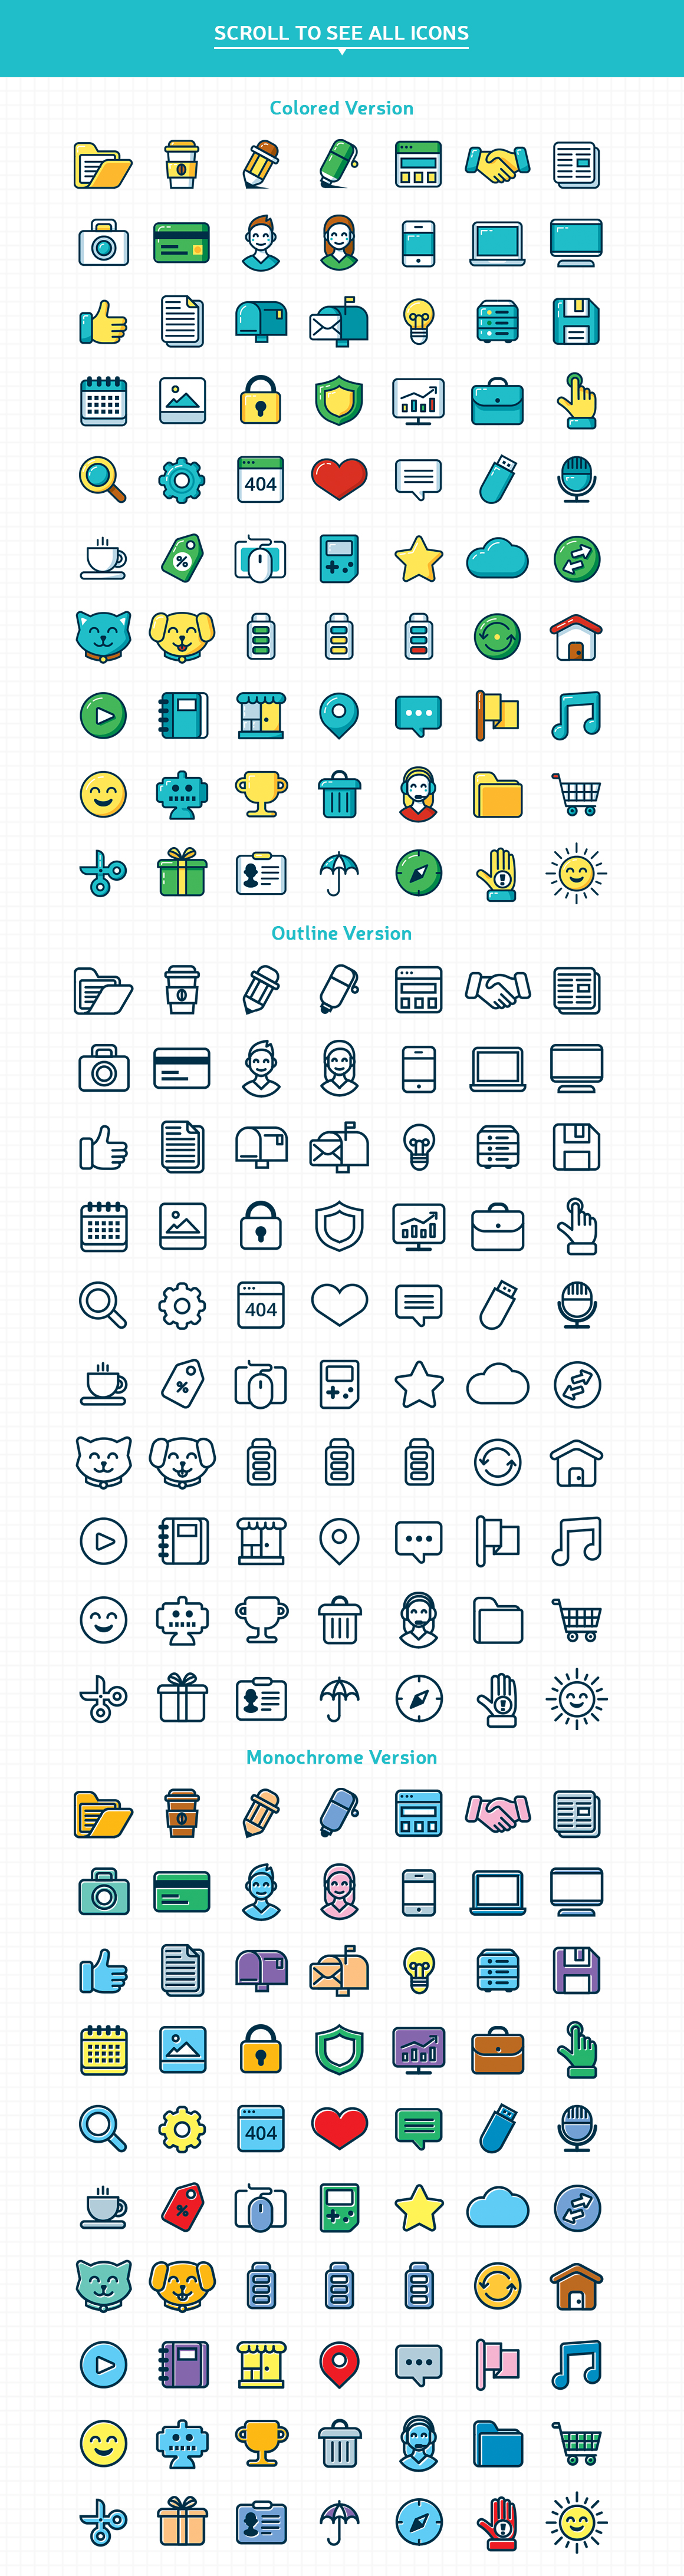 Customizable Outline Icons Set example image 5